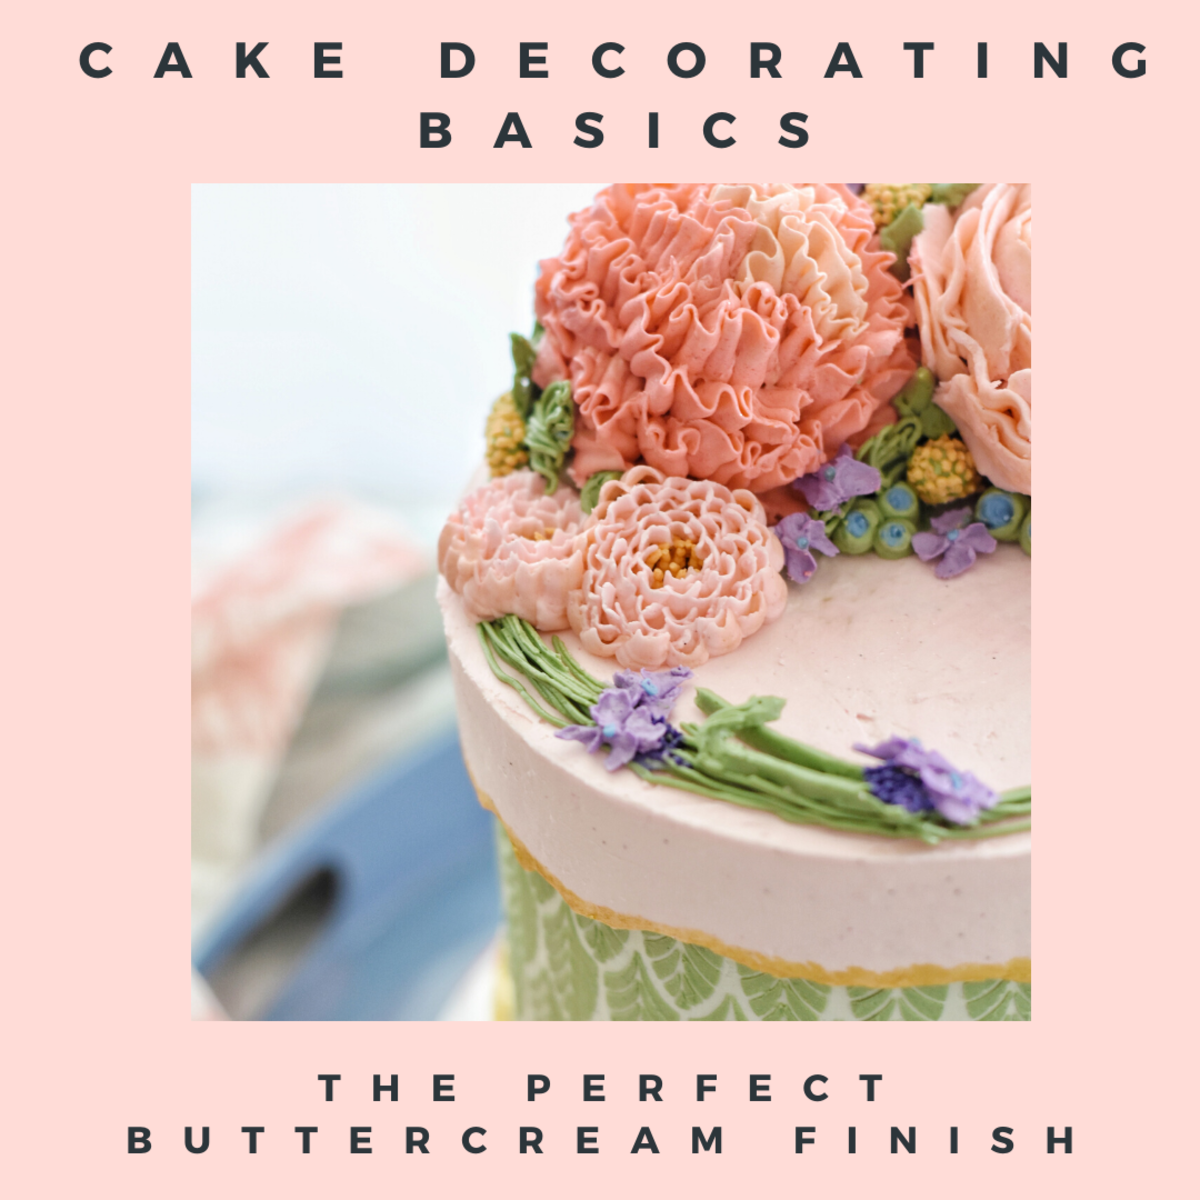 Cake Decorating Basics: How to Achieve the Perfect Buttercream Finish